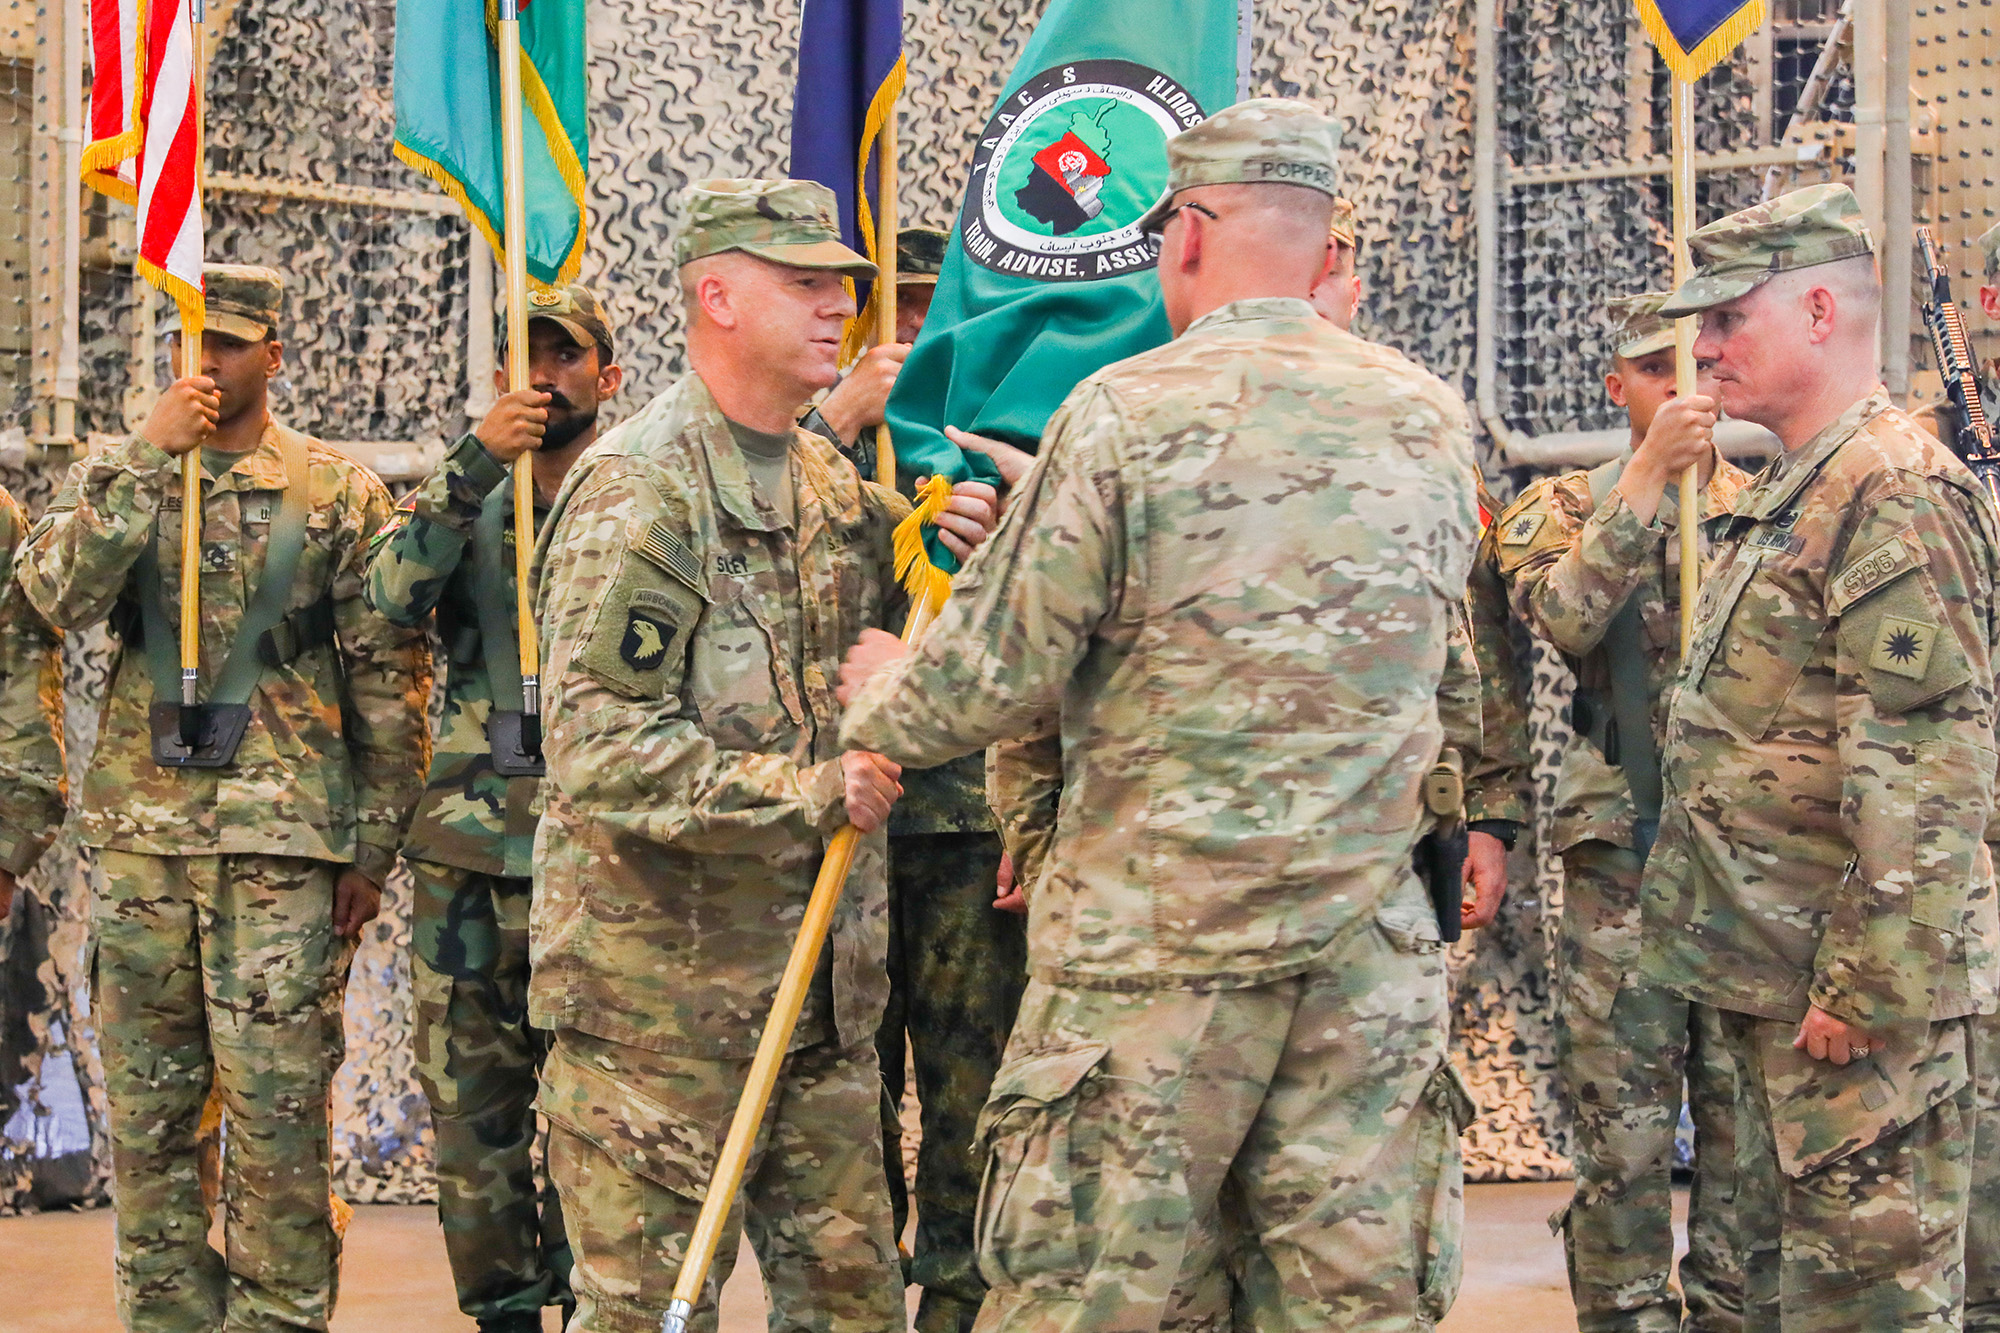 Army Maj. Gen. Andrew Poppas hands the Train, Advise and Assist Command-South colors to Army Brig. Gen. Jeffrey Smiley, incoming commander for TAAC-South on June 30, 2018 during a transfer of authority ceremony in Kandahar, Afghanistan. (Staff Sgt. Neysa Canfield/Army)